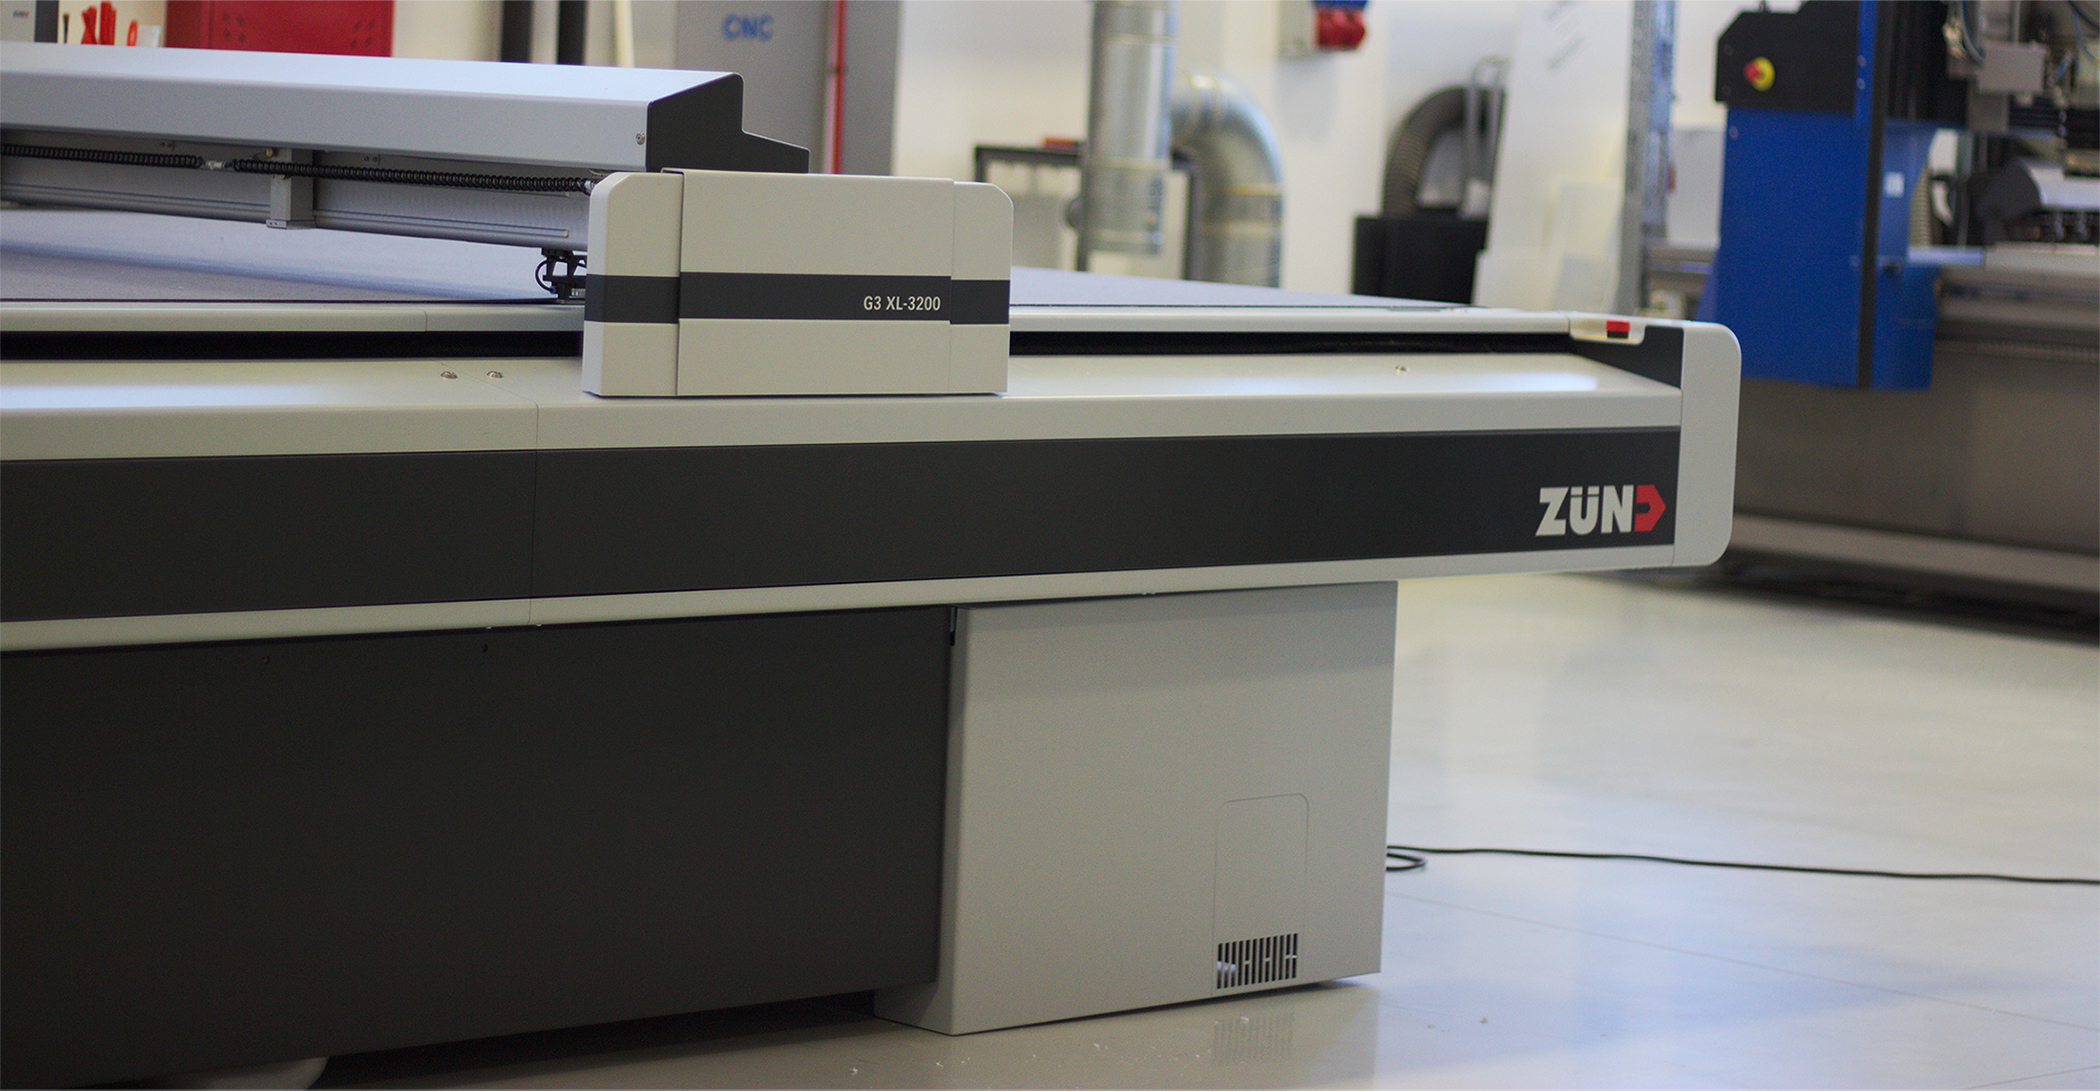 ZUND G3 XL-3200 – newest addition to our machine pool!